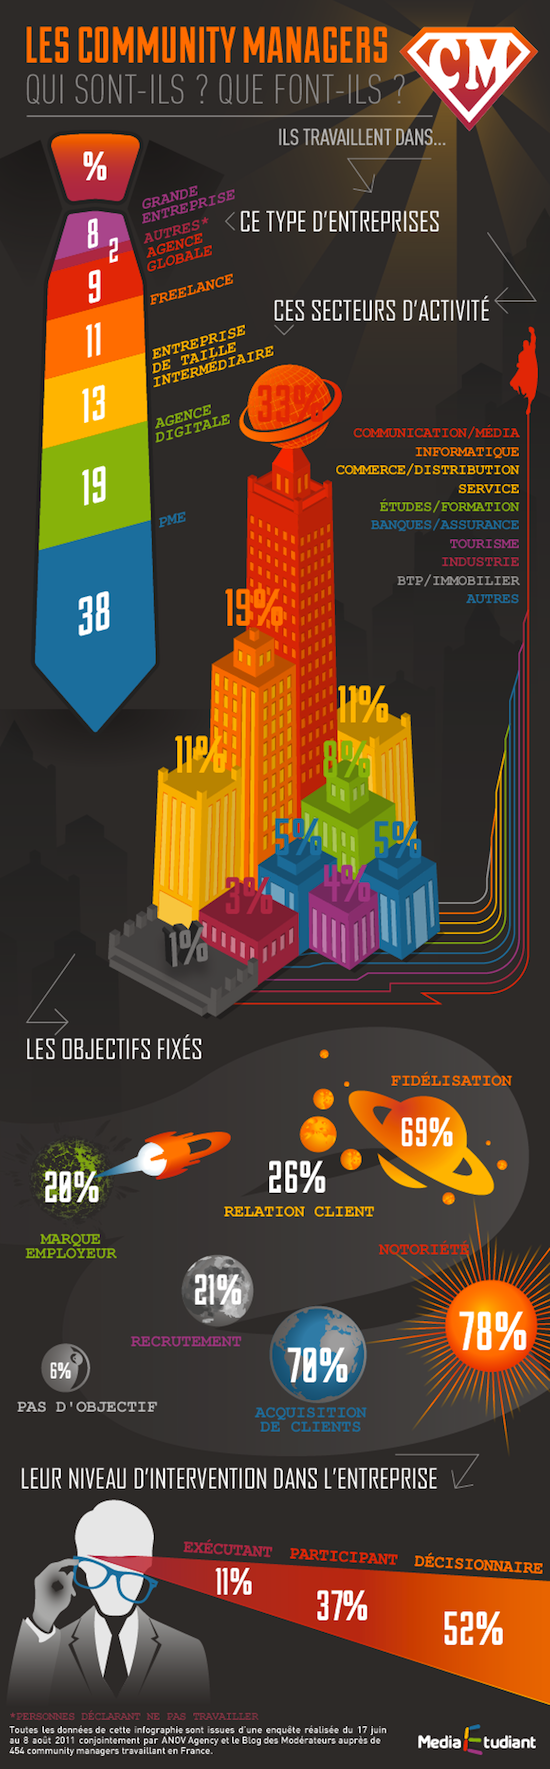 Semaine_du_Digital_infographies_communityManagment_v1-1